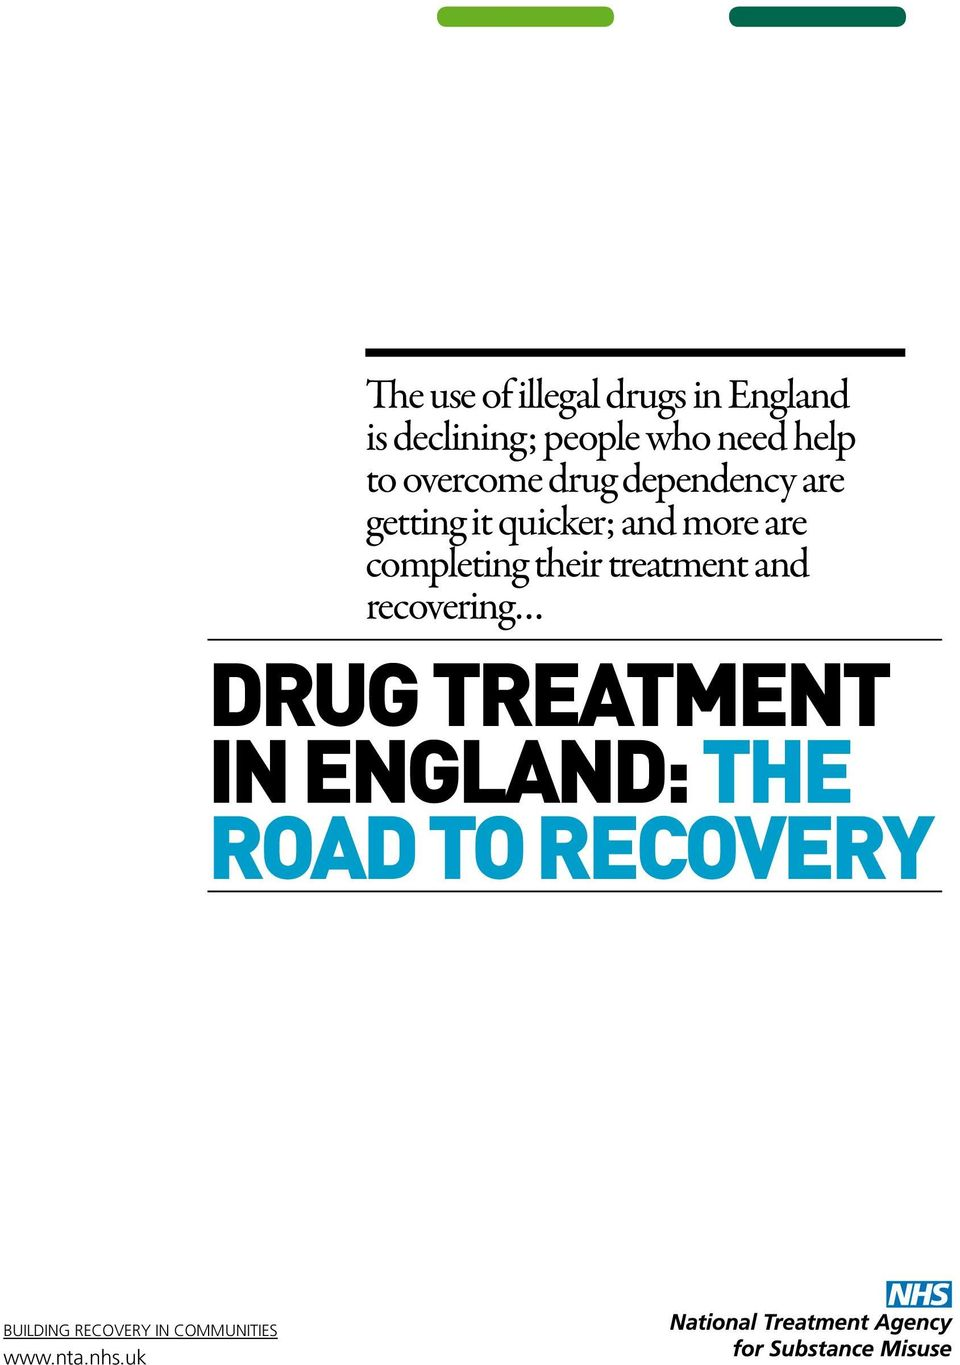 are completing their treatment and recovering drug treatment in